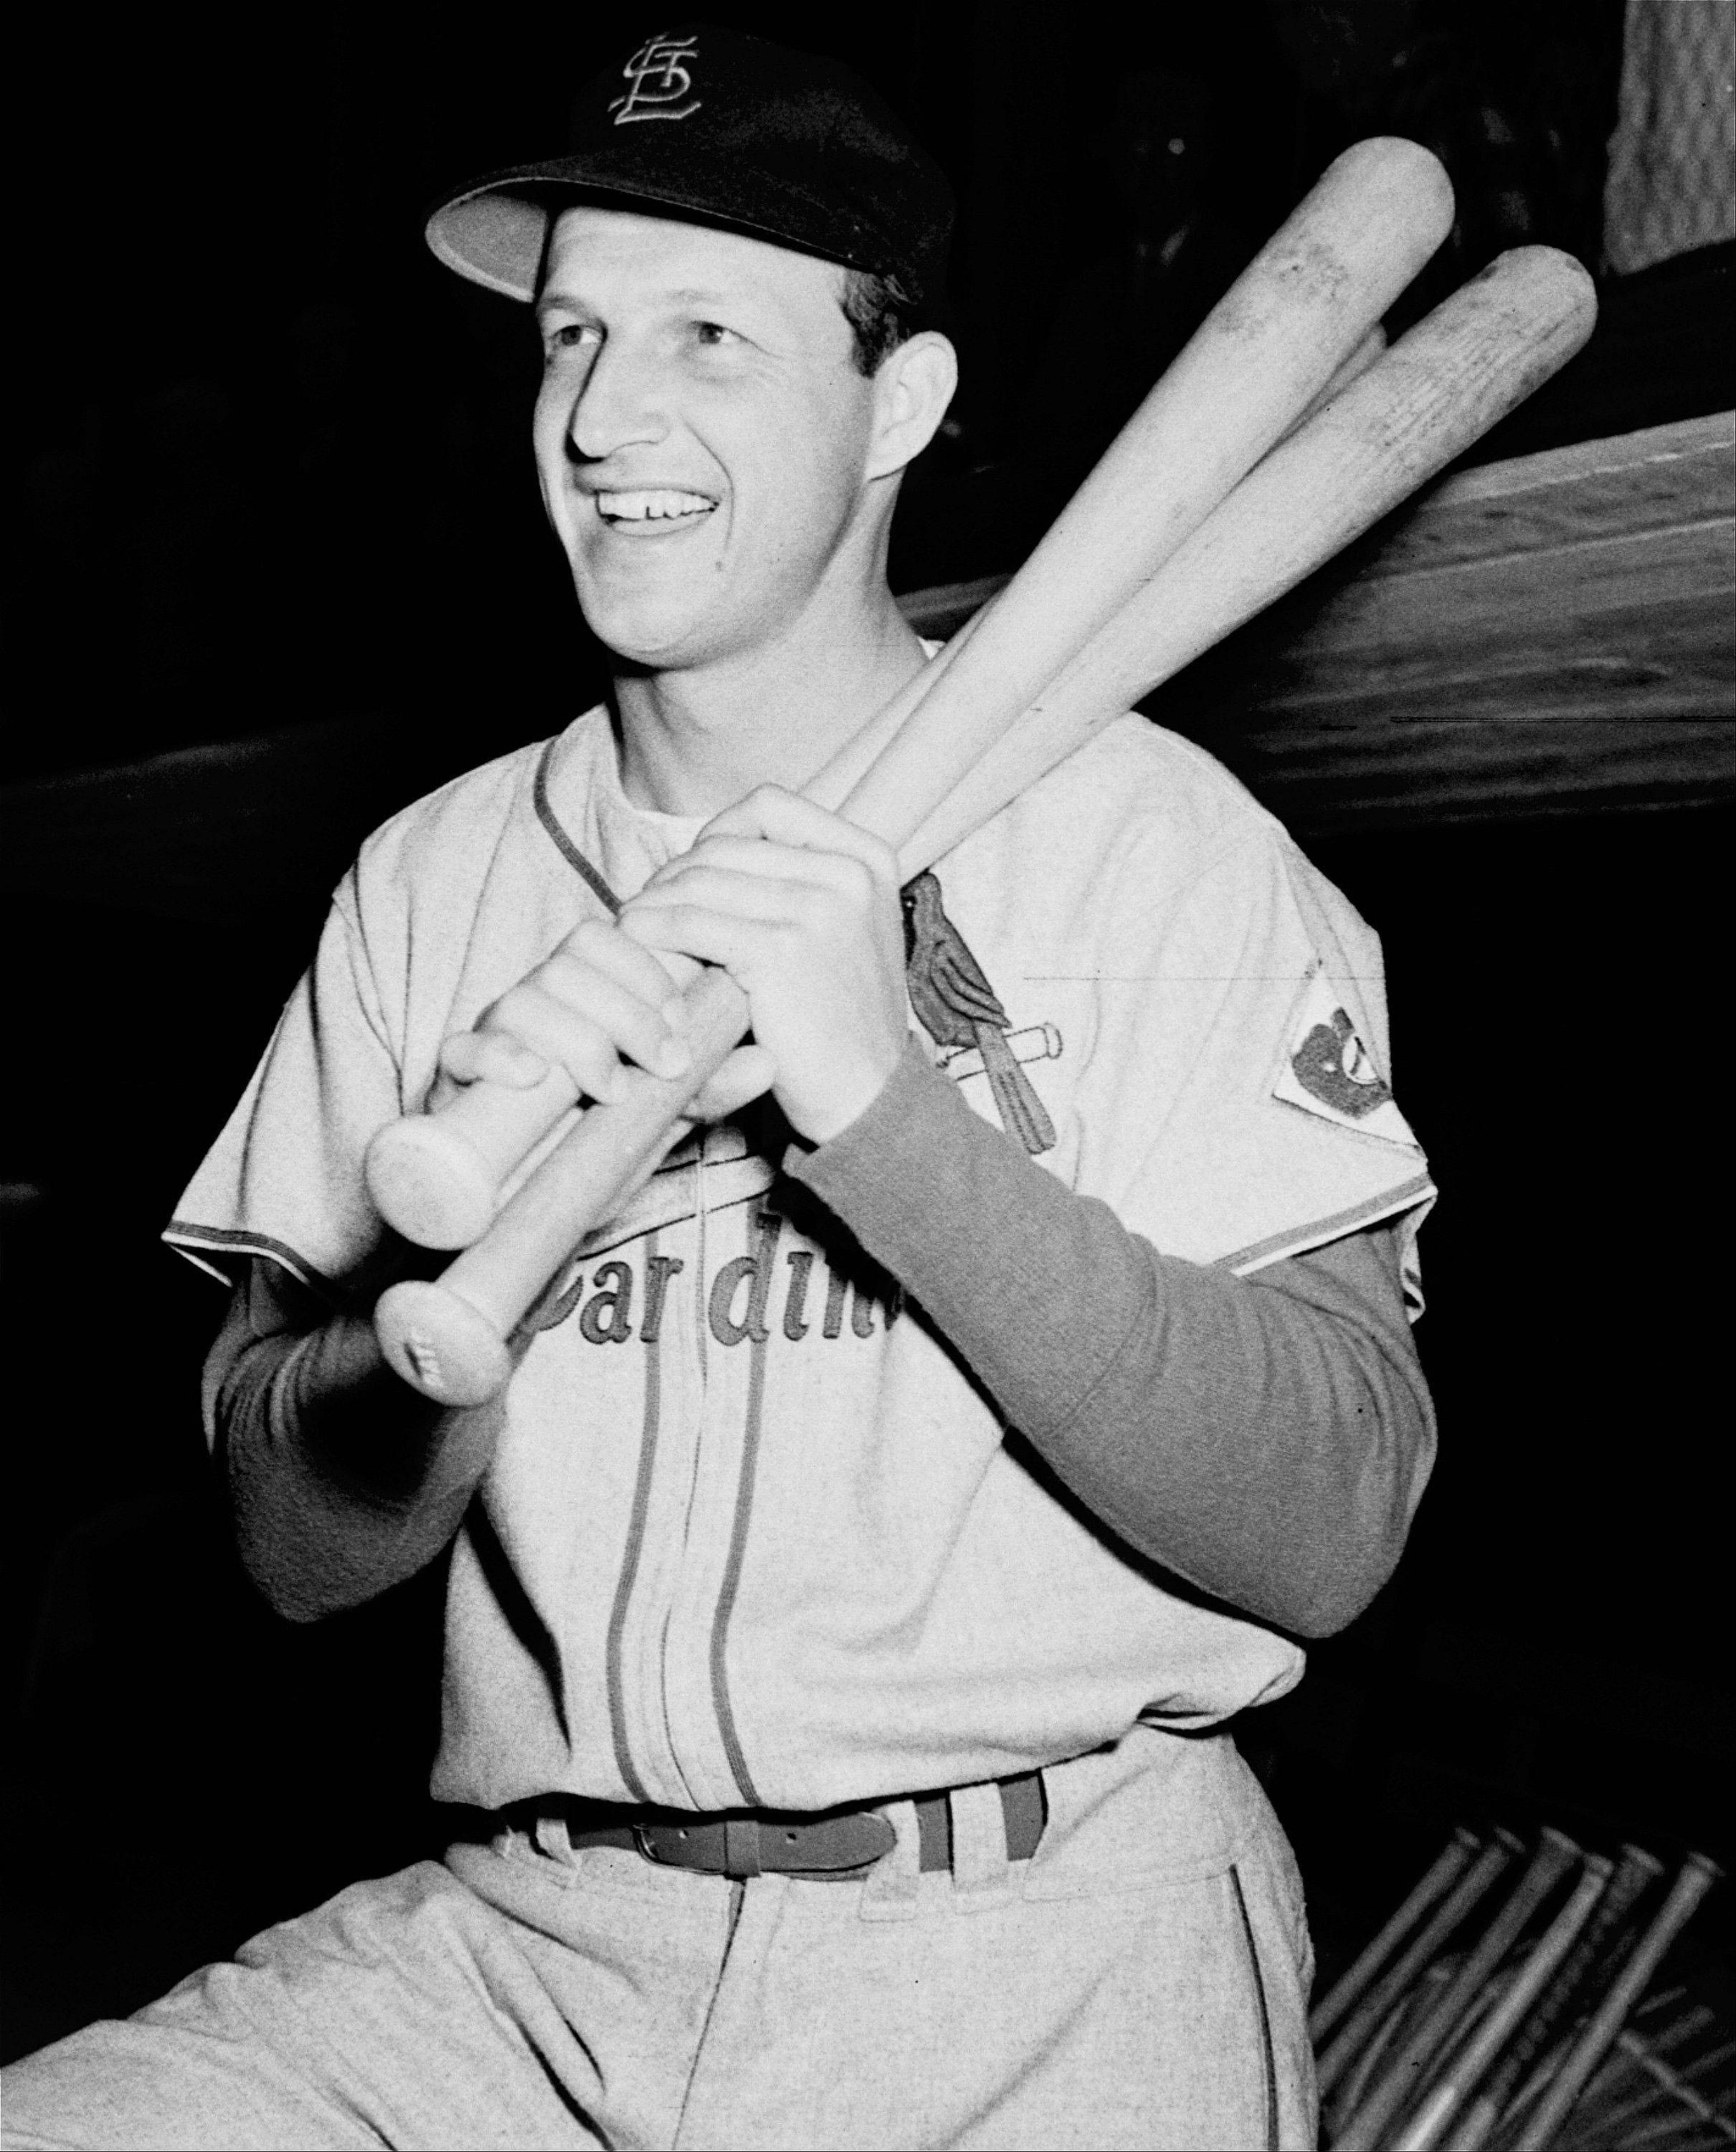 St. Loius Cardinal Stan Musial poses with his bats on his shoulder as he put on his uniform for the first time at spring training baseball in St. Petersburg, Fla.